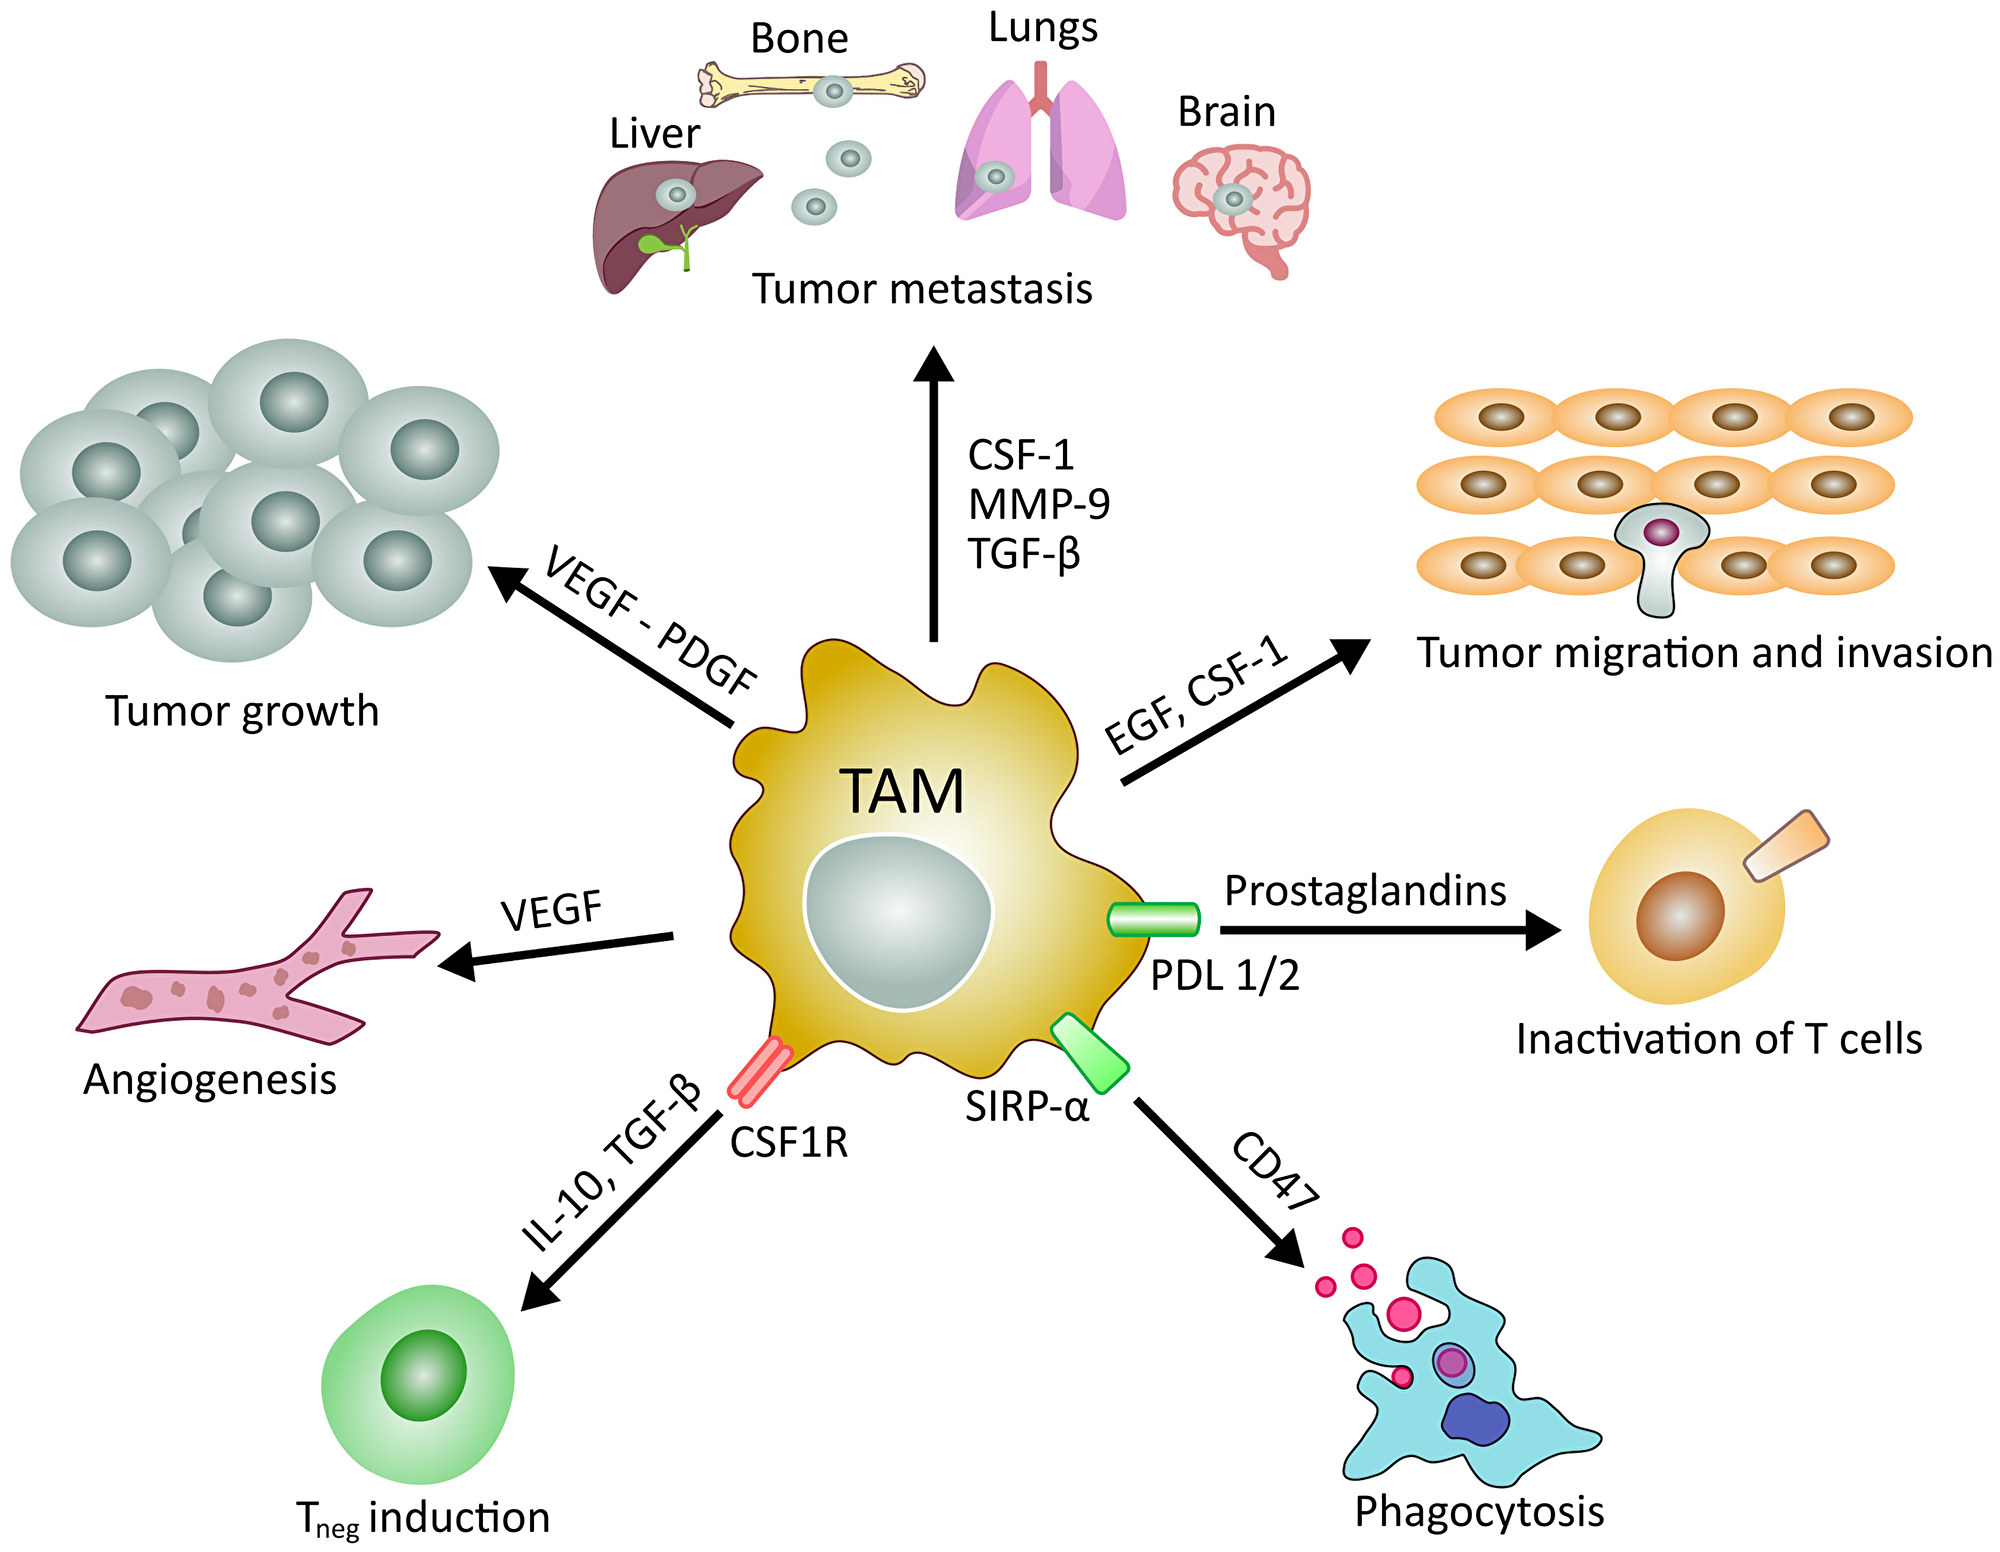 Main roles of tumor associated macrophages in cancer development and manteinance.